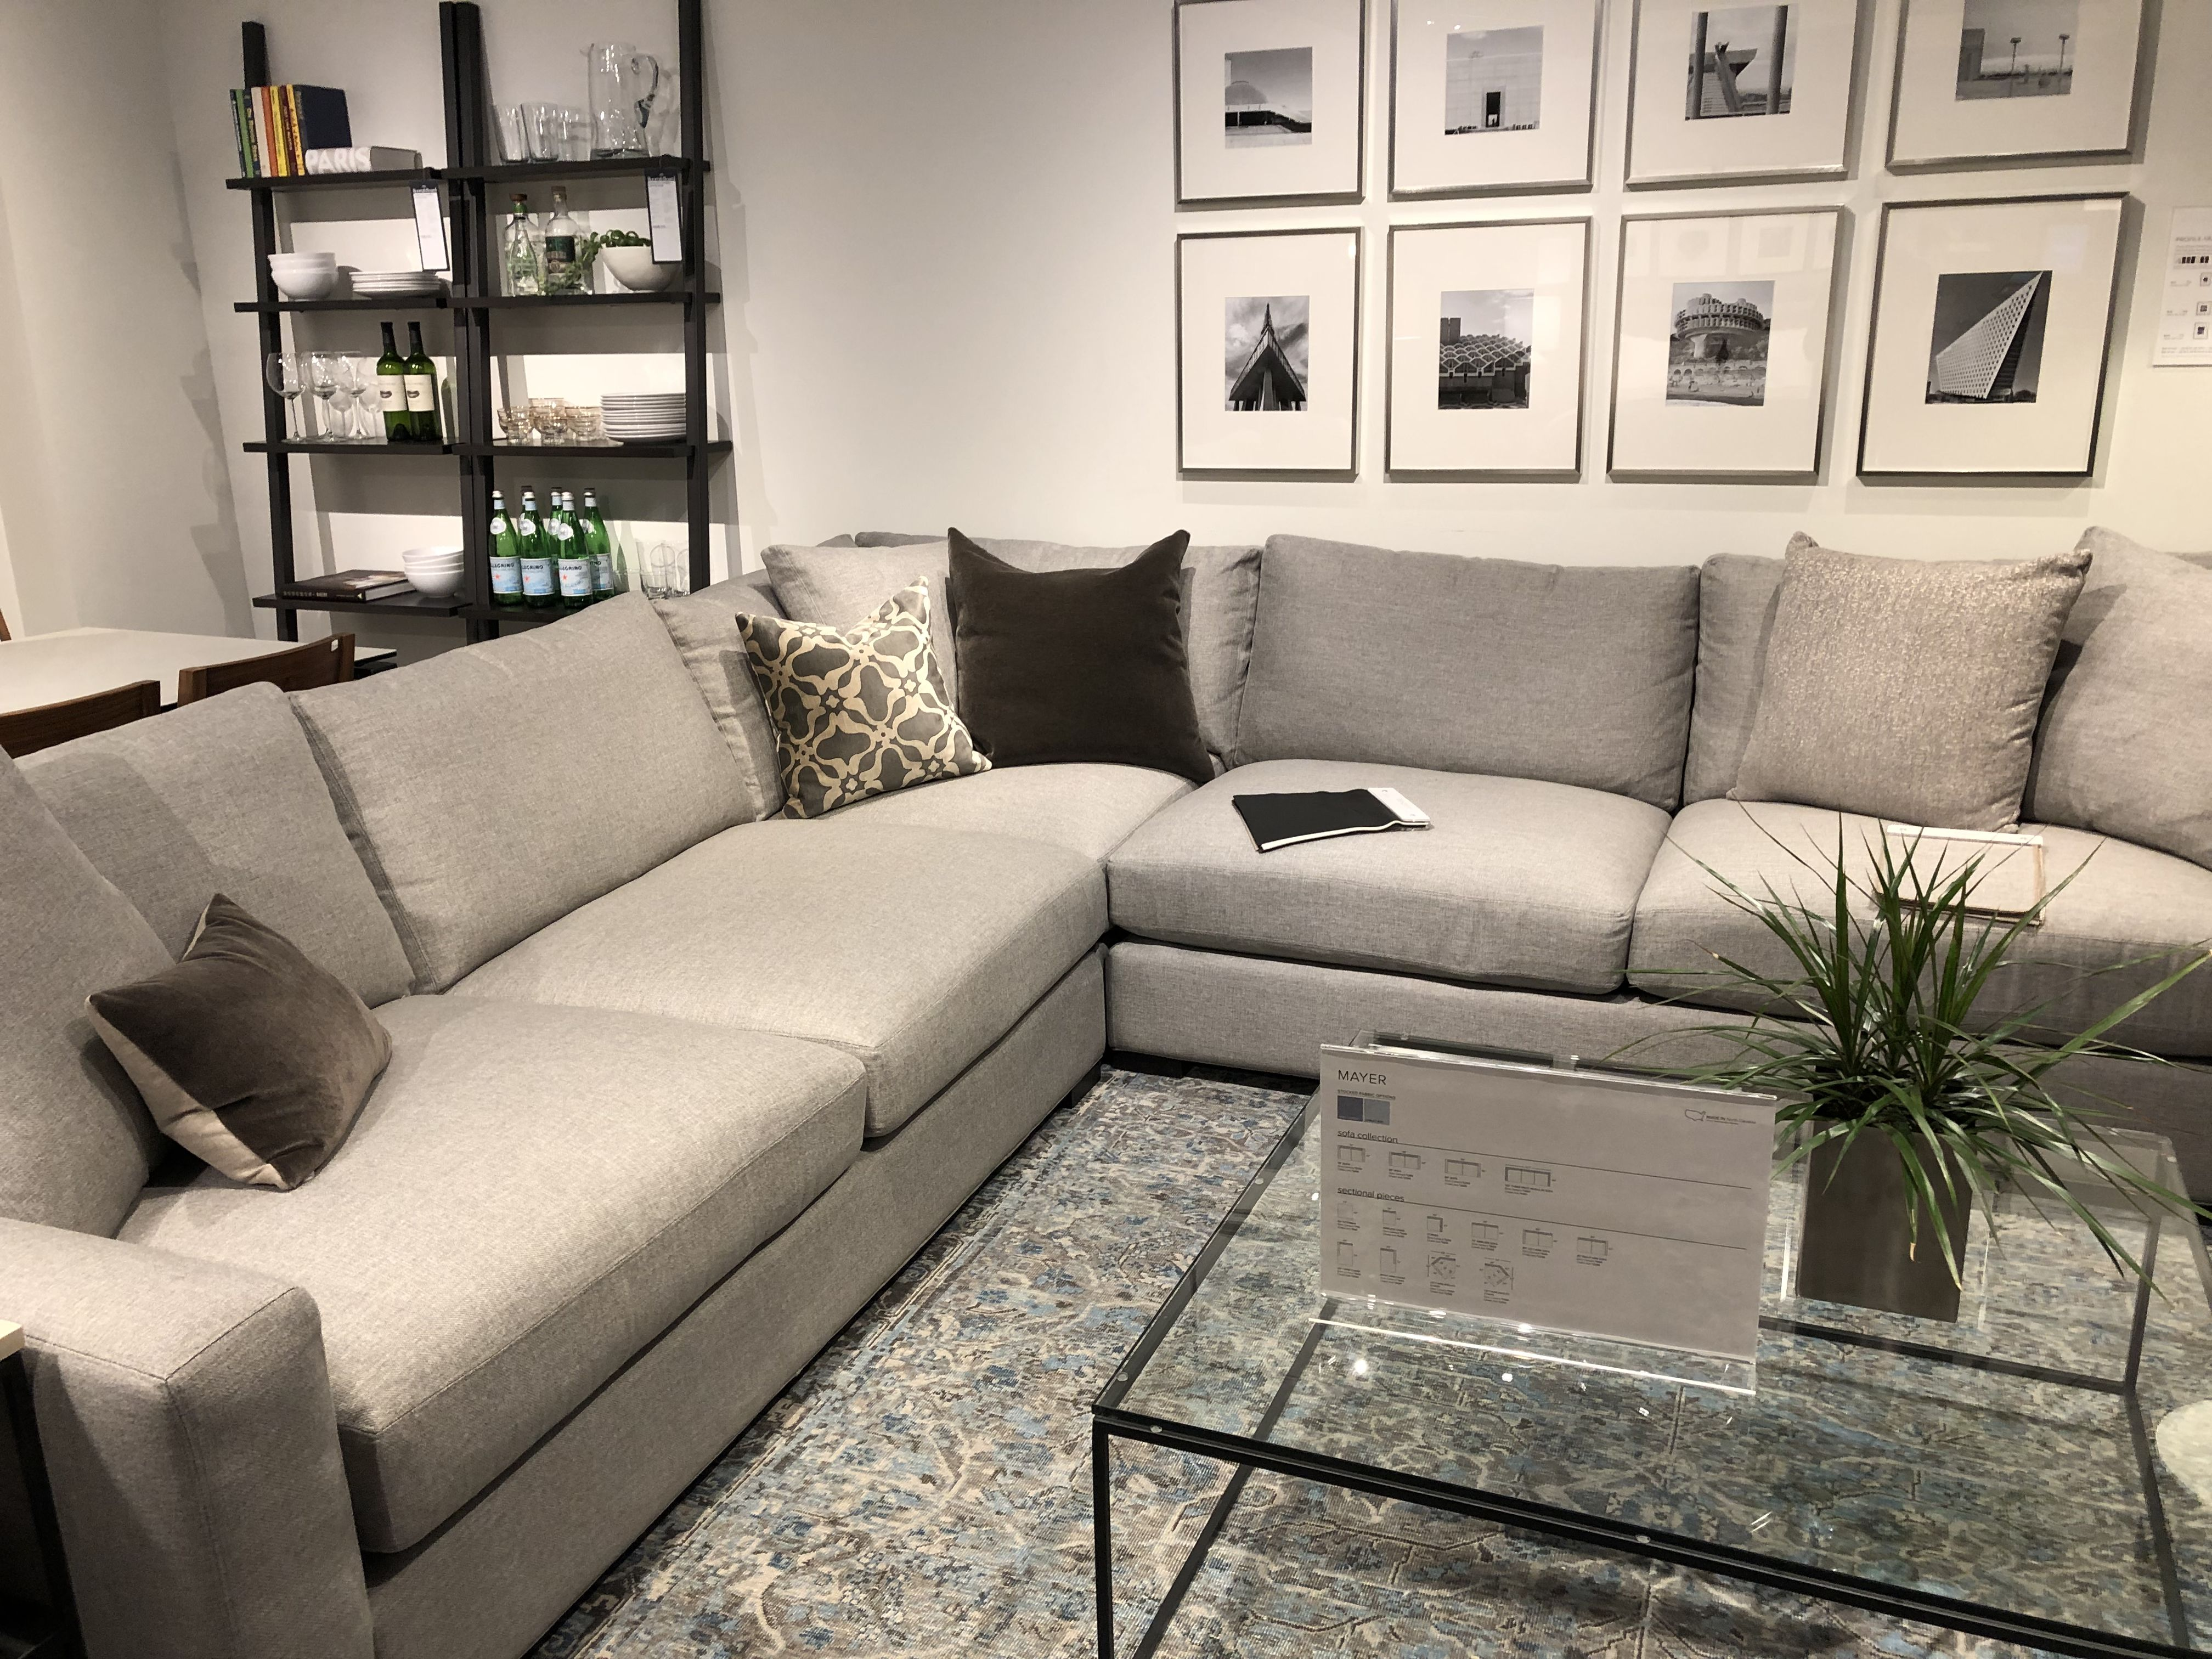 Love This Mayer Sectional Comes In Leather Super Comfy Room Board Furniture Sectional Home Room and board leather sofa